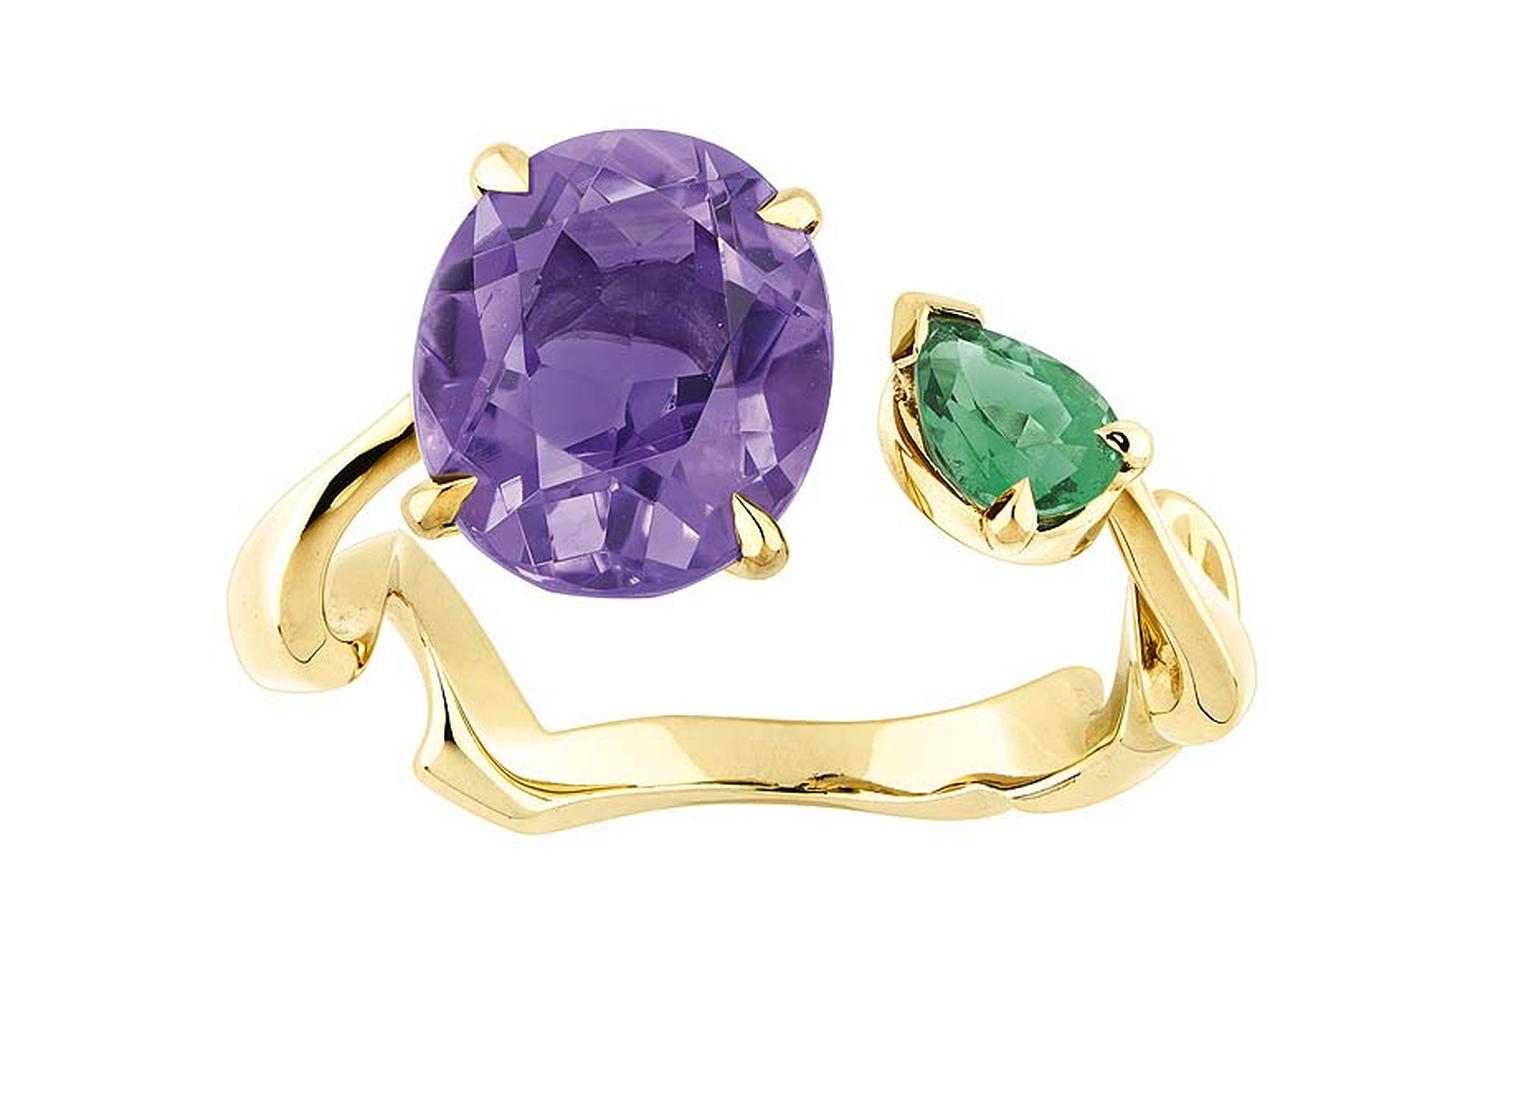 Amethyst and emerald Dior ring from the Diorama Precieuse collection with an on-trend open-ended design.